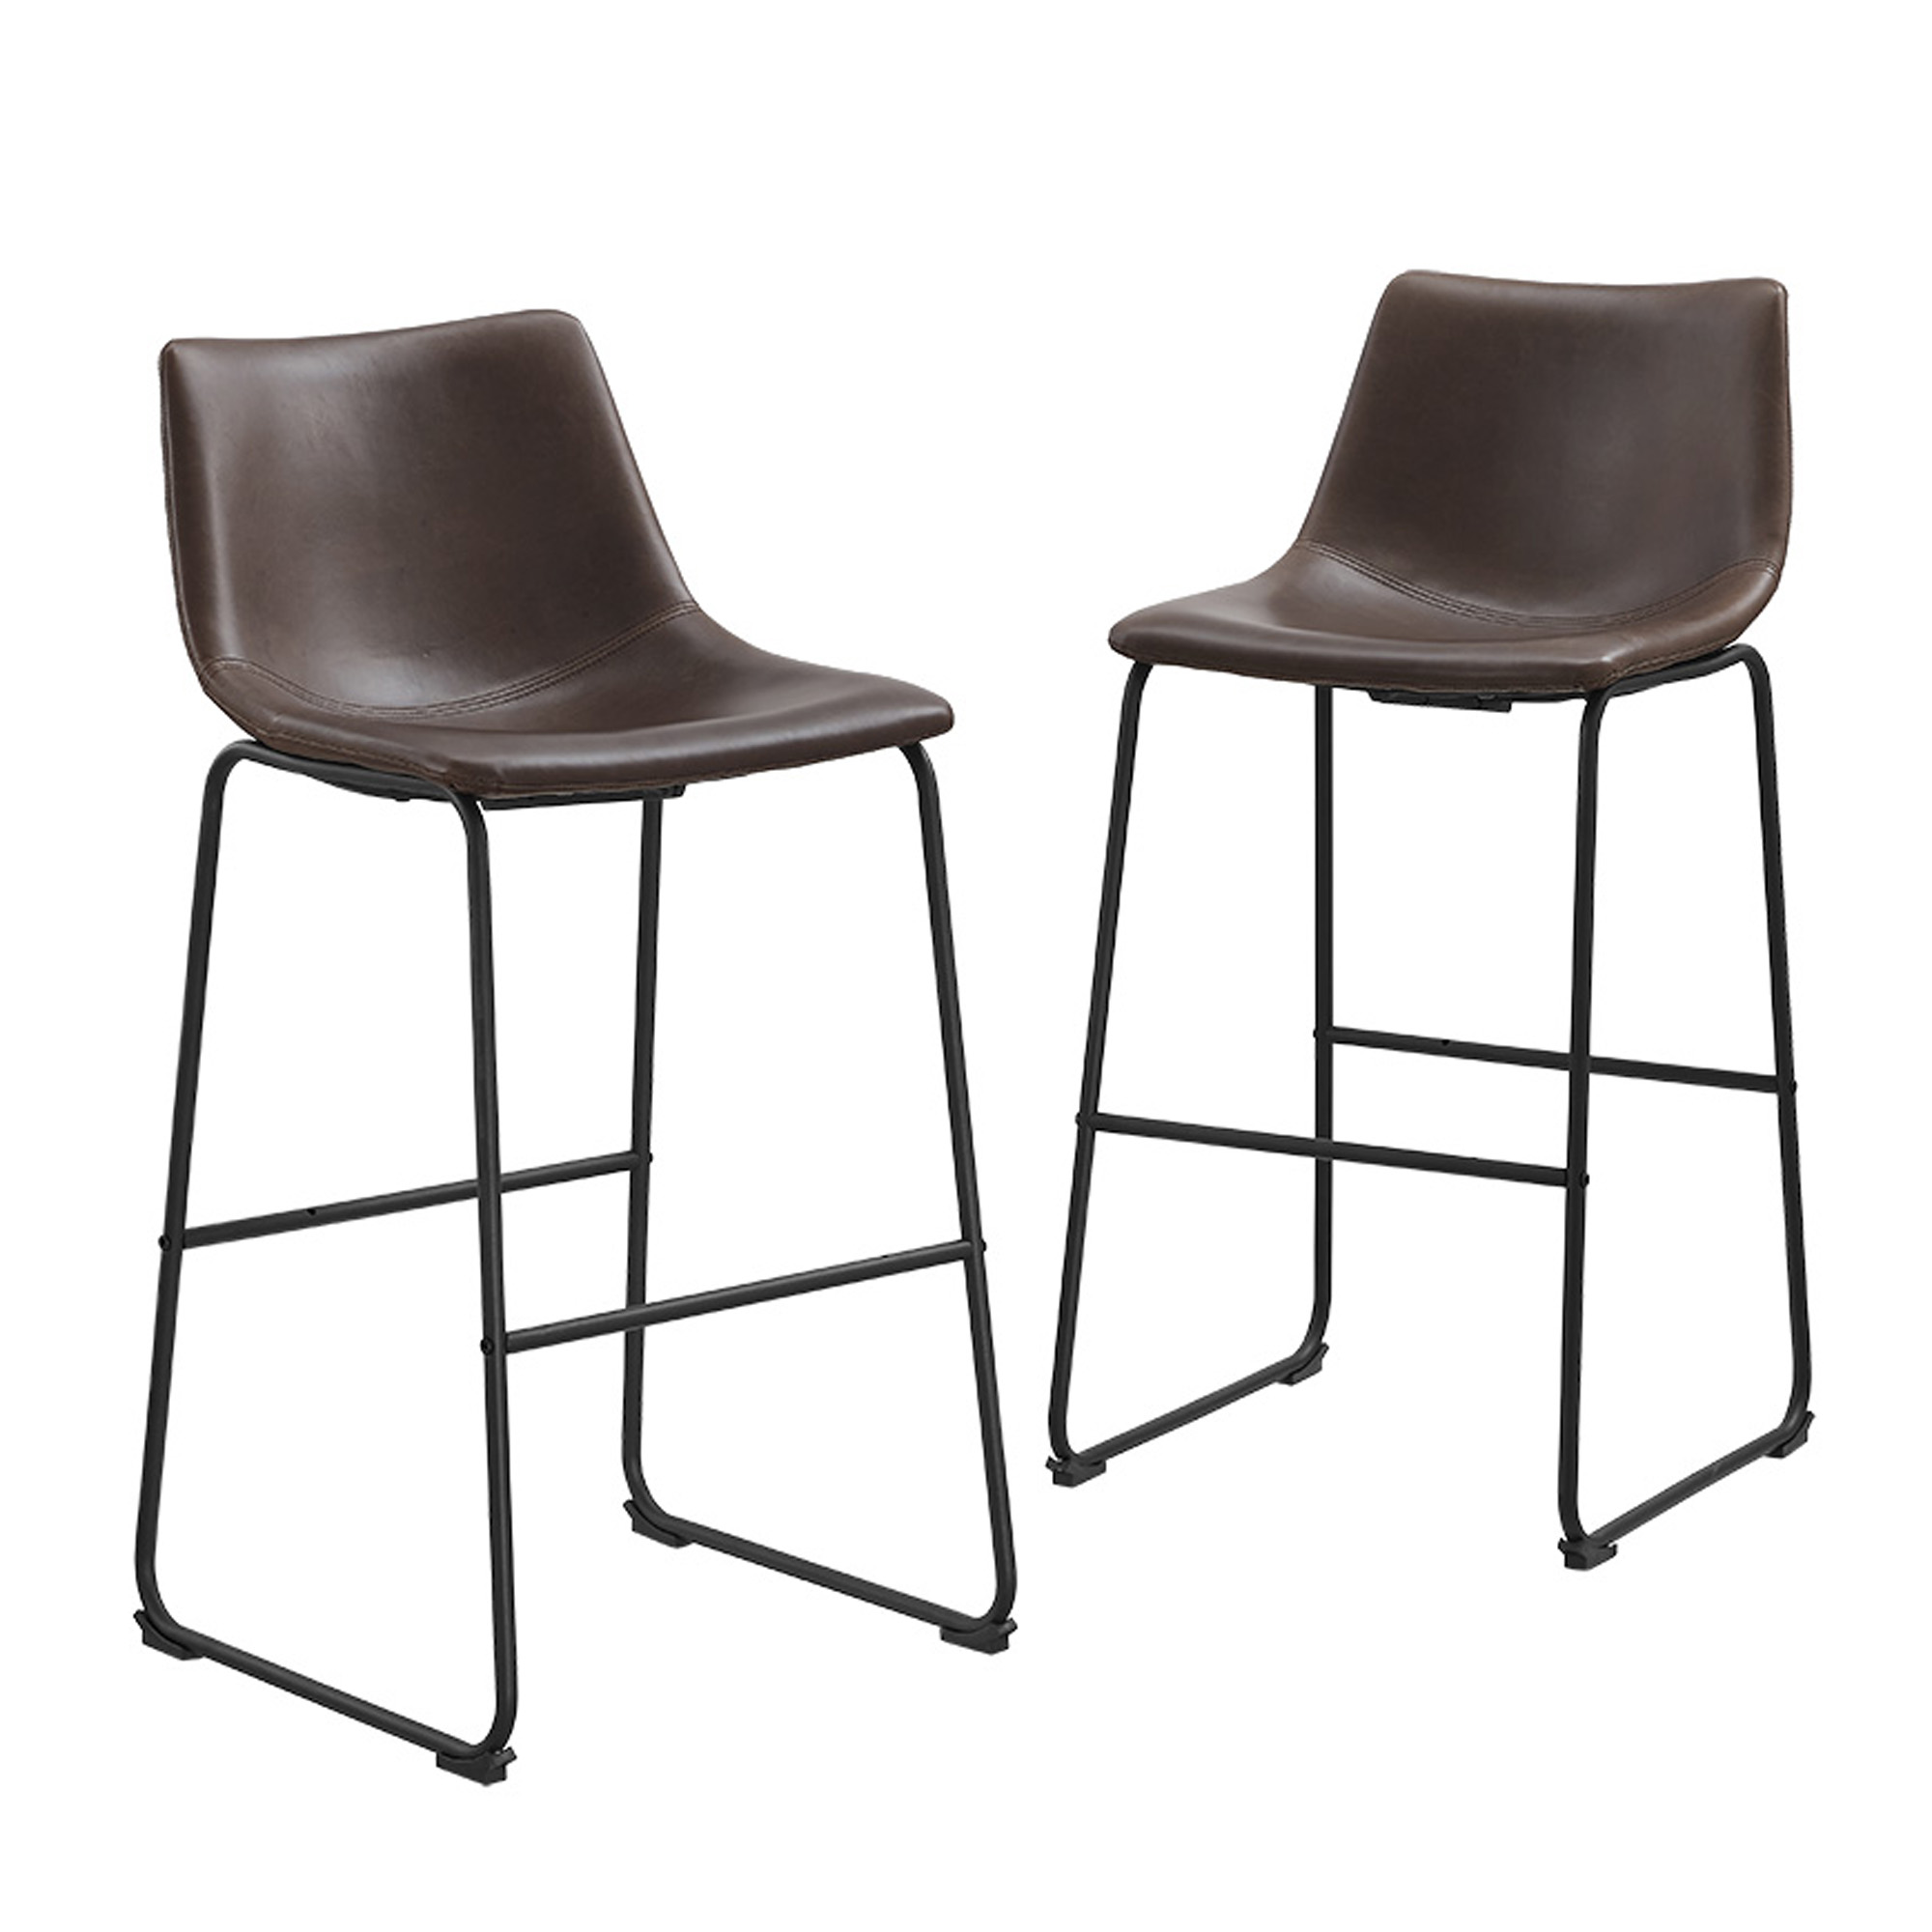 Modern Faux Leather Dining Kitchen Bar Stools, Set of 2 - Brown